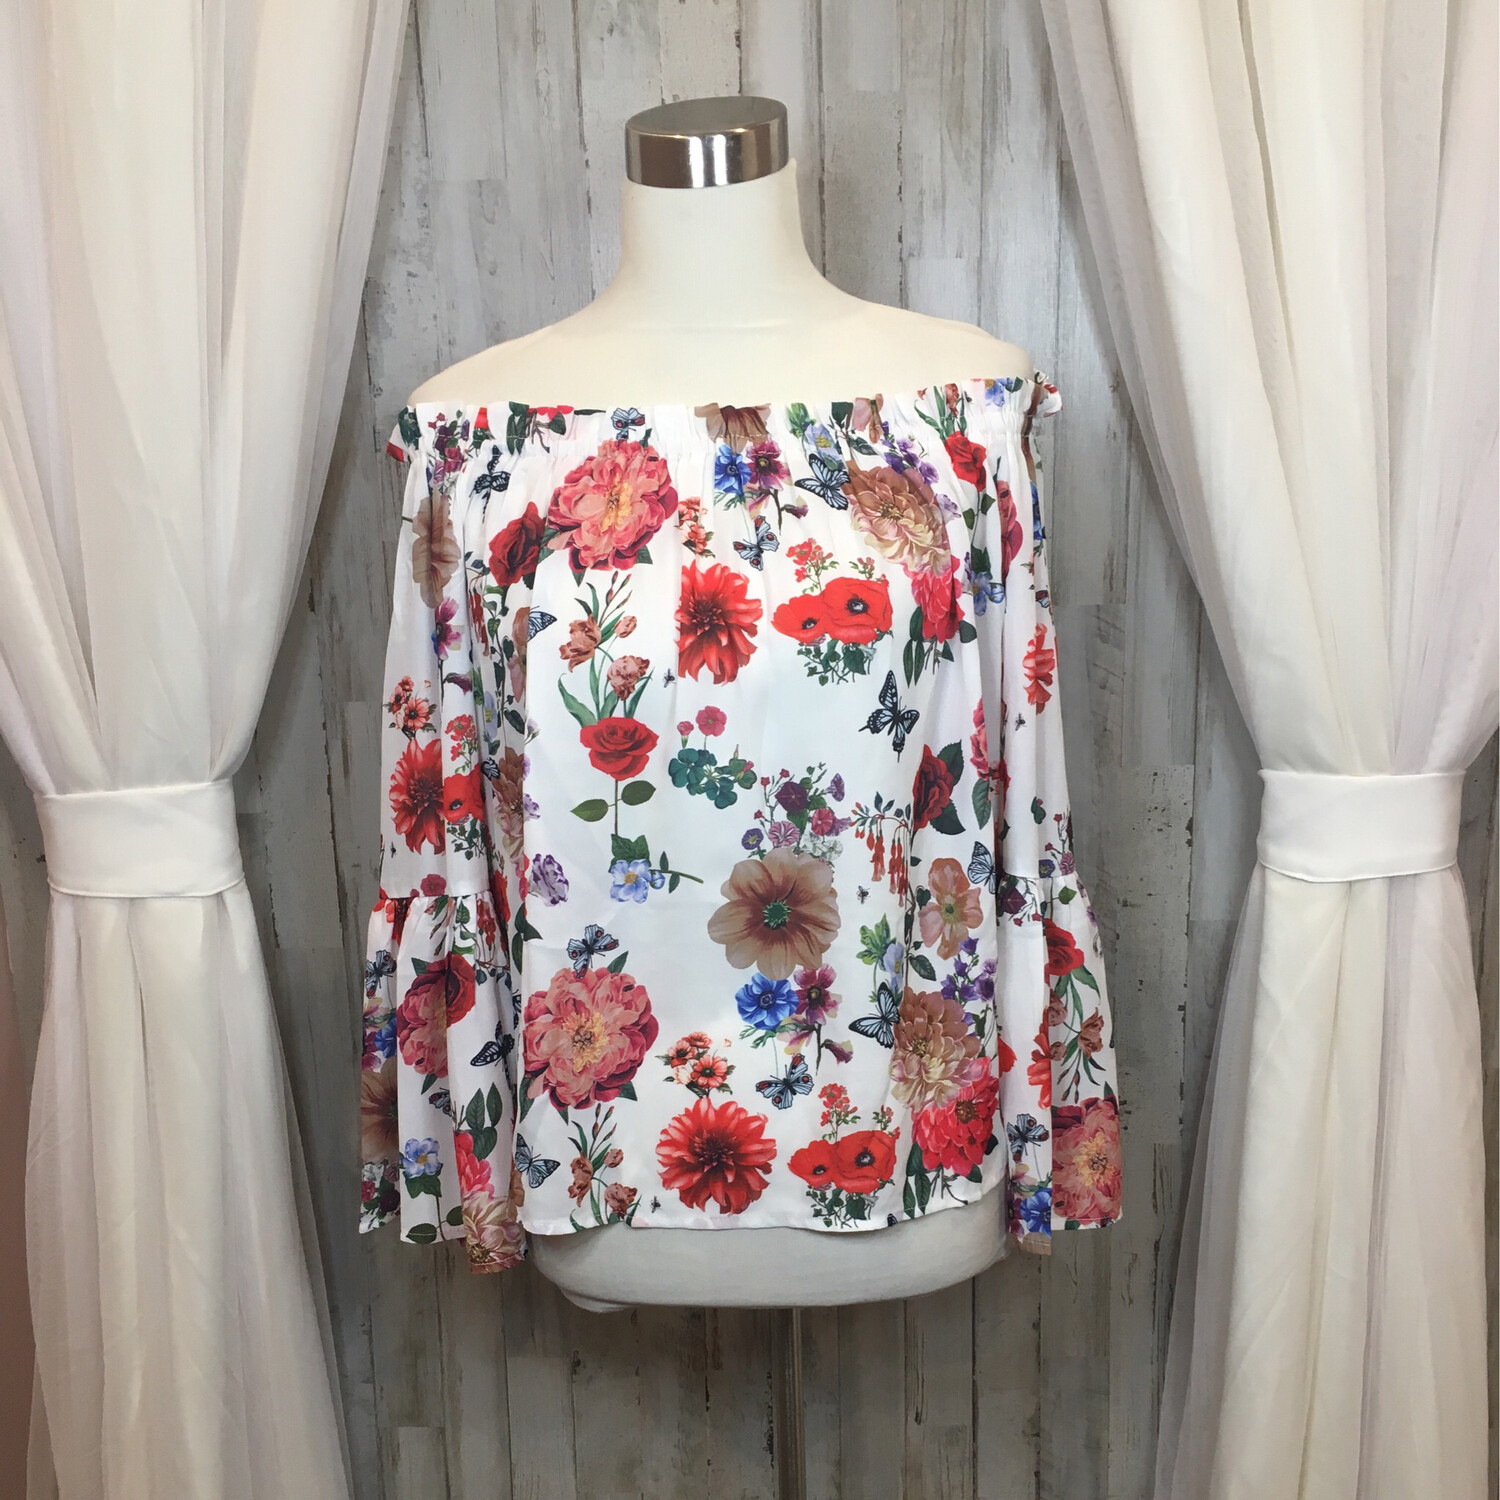 Blooming Jelly White Top w/Floral & Butterfly Print - S